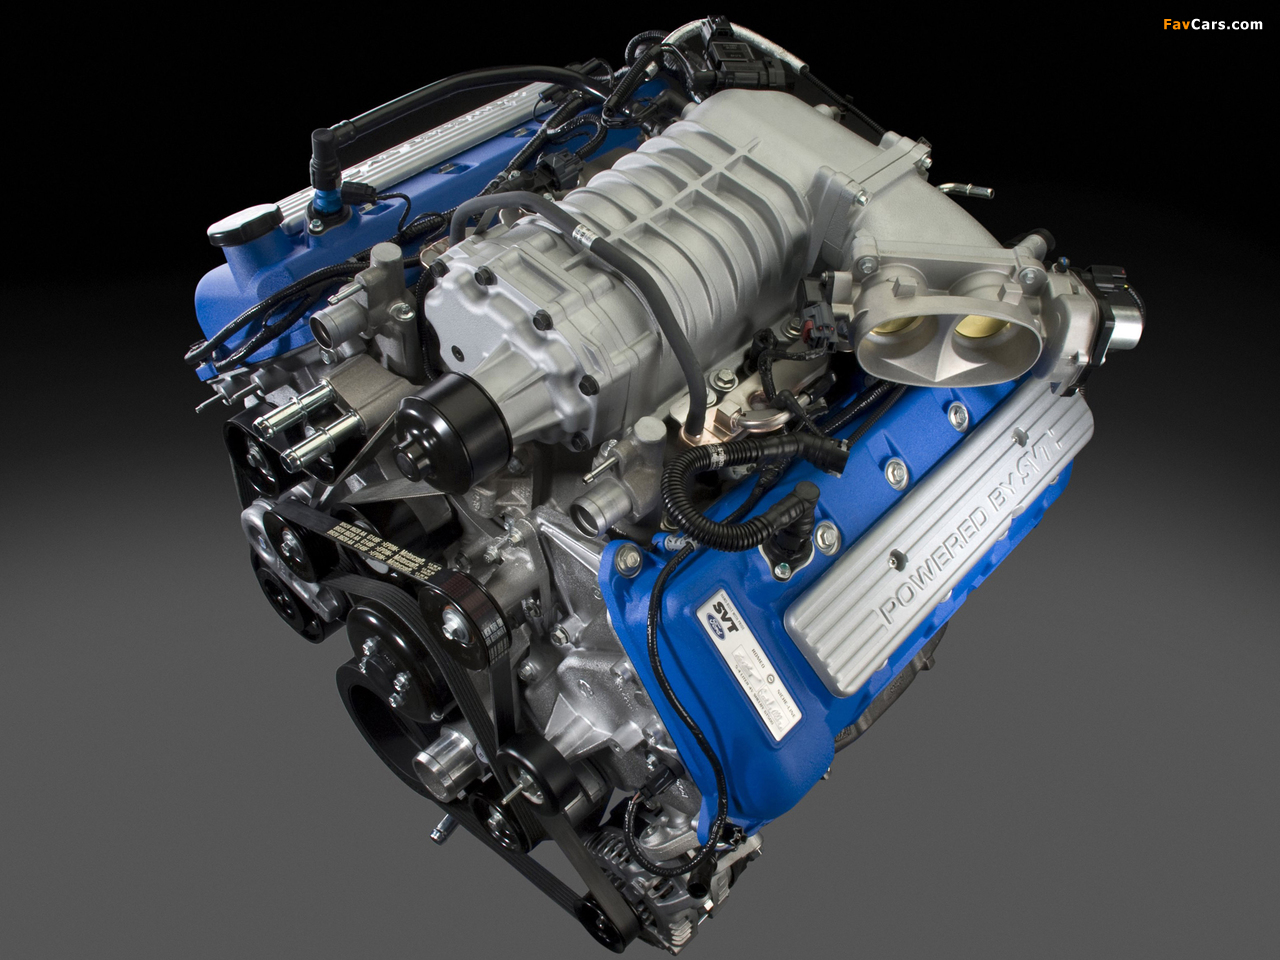 Photos of Engines  Shelby 5.4 V8 (1280 x 960)